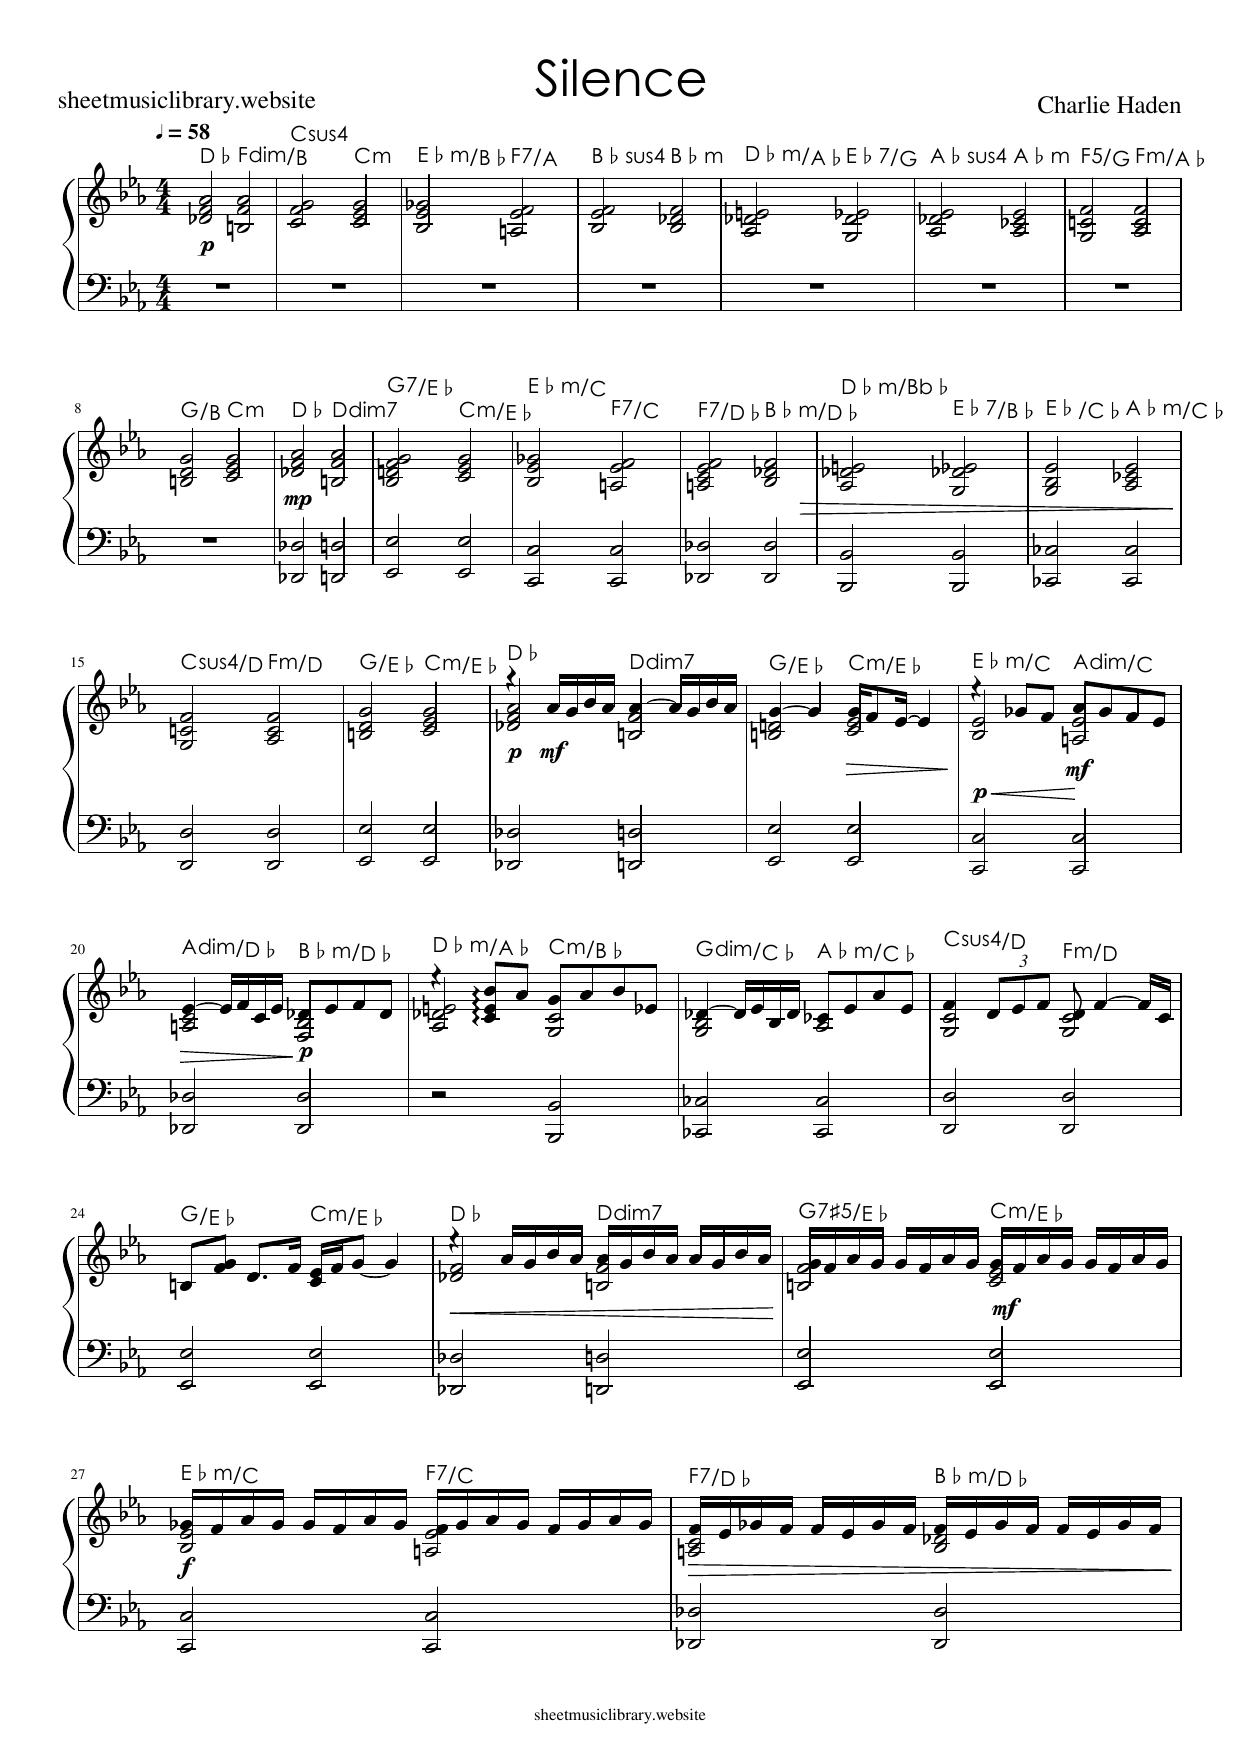 silence sheet music download partitura partition spartiti